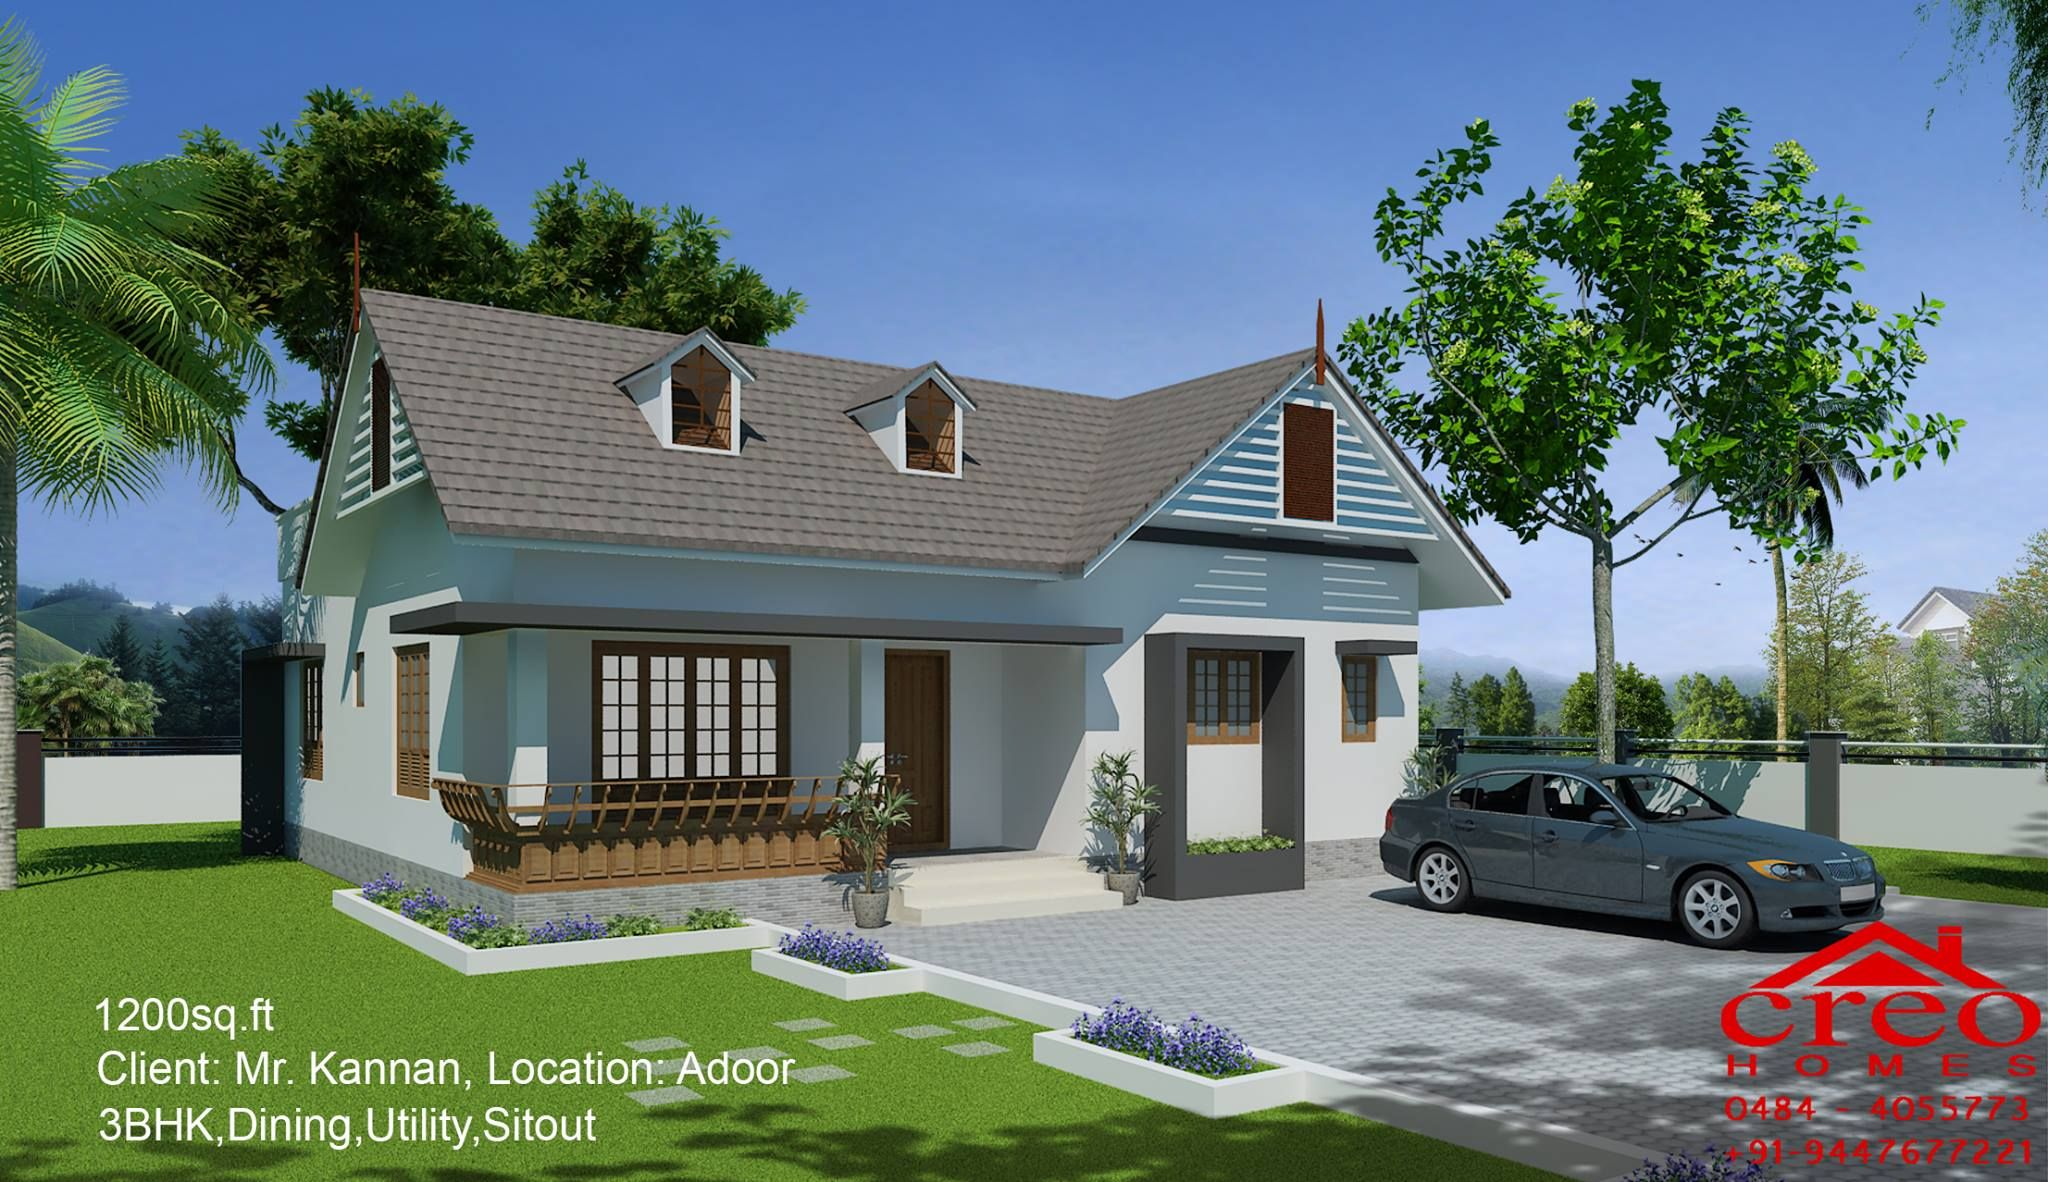 20 Lakh Home In Surat House Design In Kerala Below 15 Lakhs Ideas For The